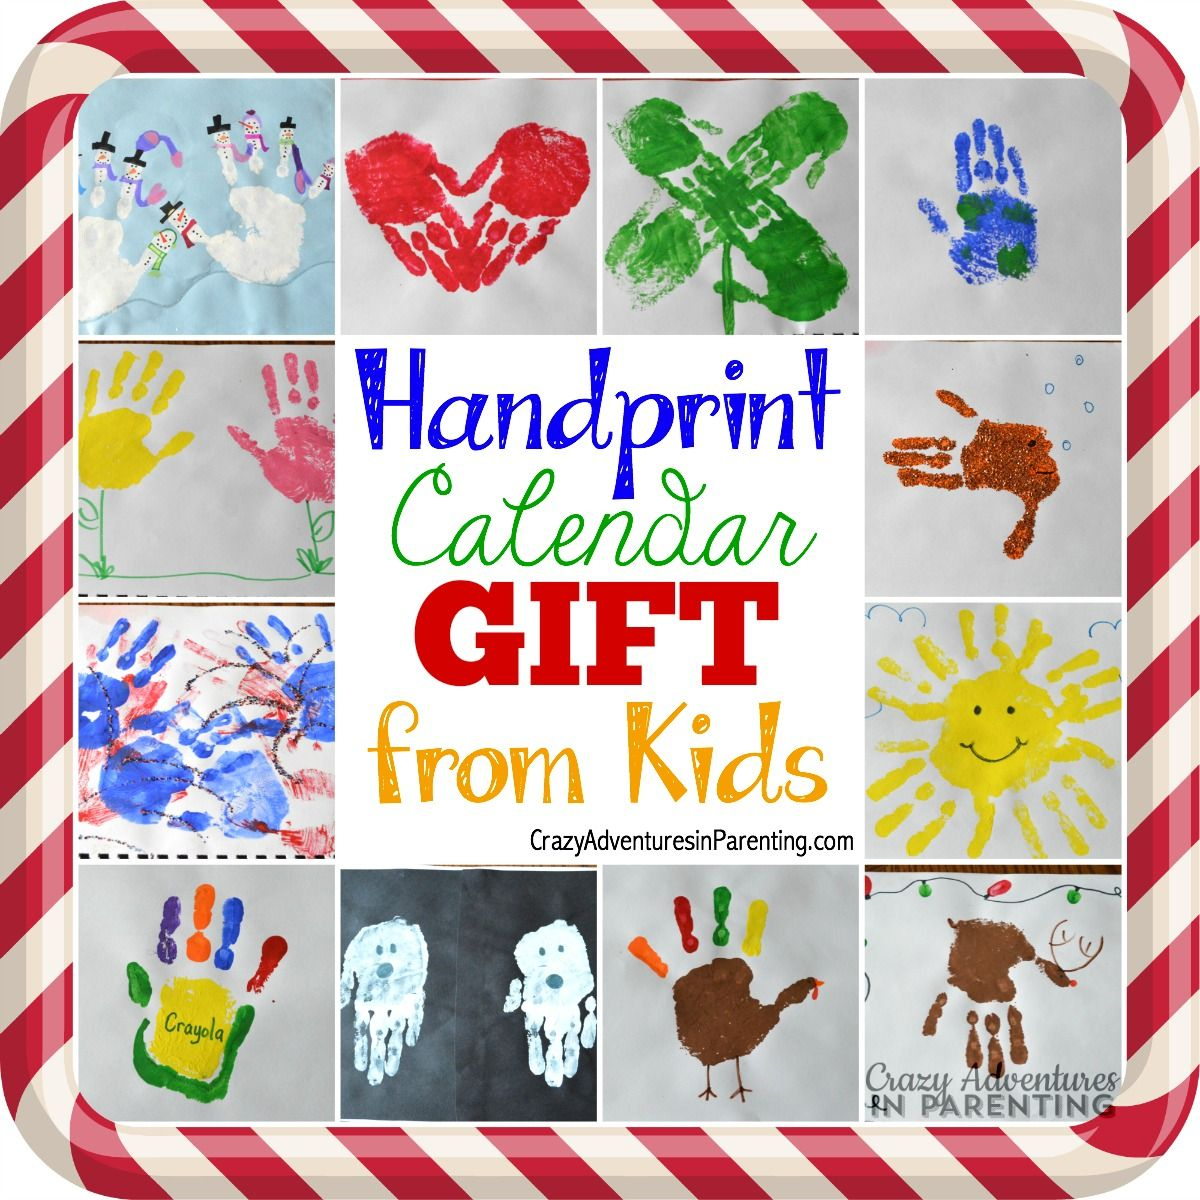 Easy Christmas Gifts For Kids To Make: Handprint Calendar (Plus 15 Homemade Holiday Gift Ideas